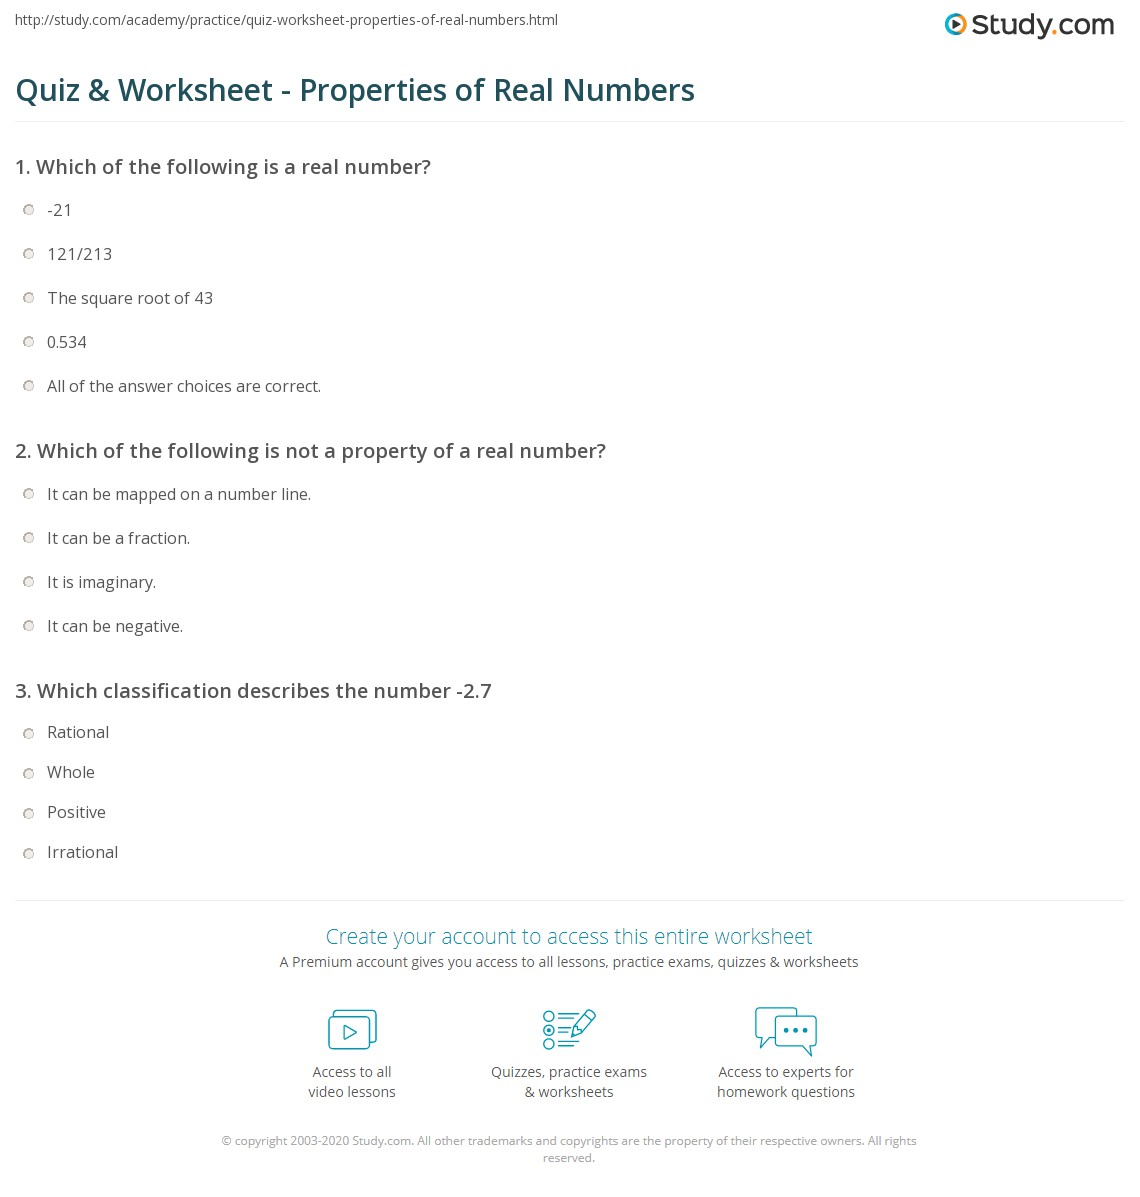 Quiz & Worksheet - Properties of Real Numbers | Study.com